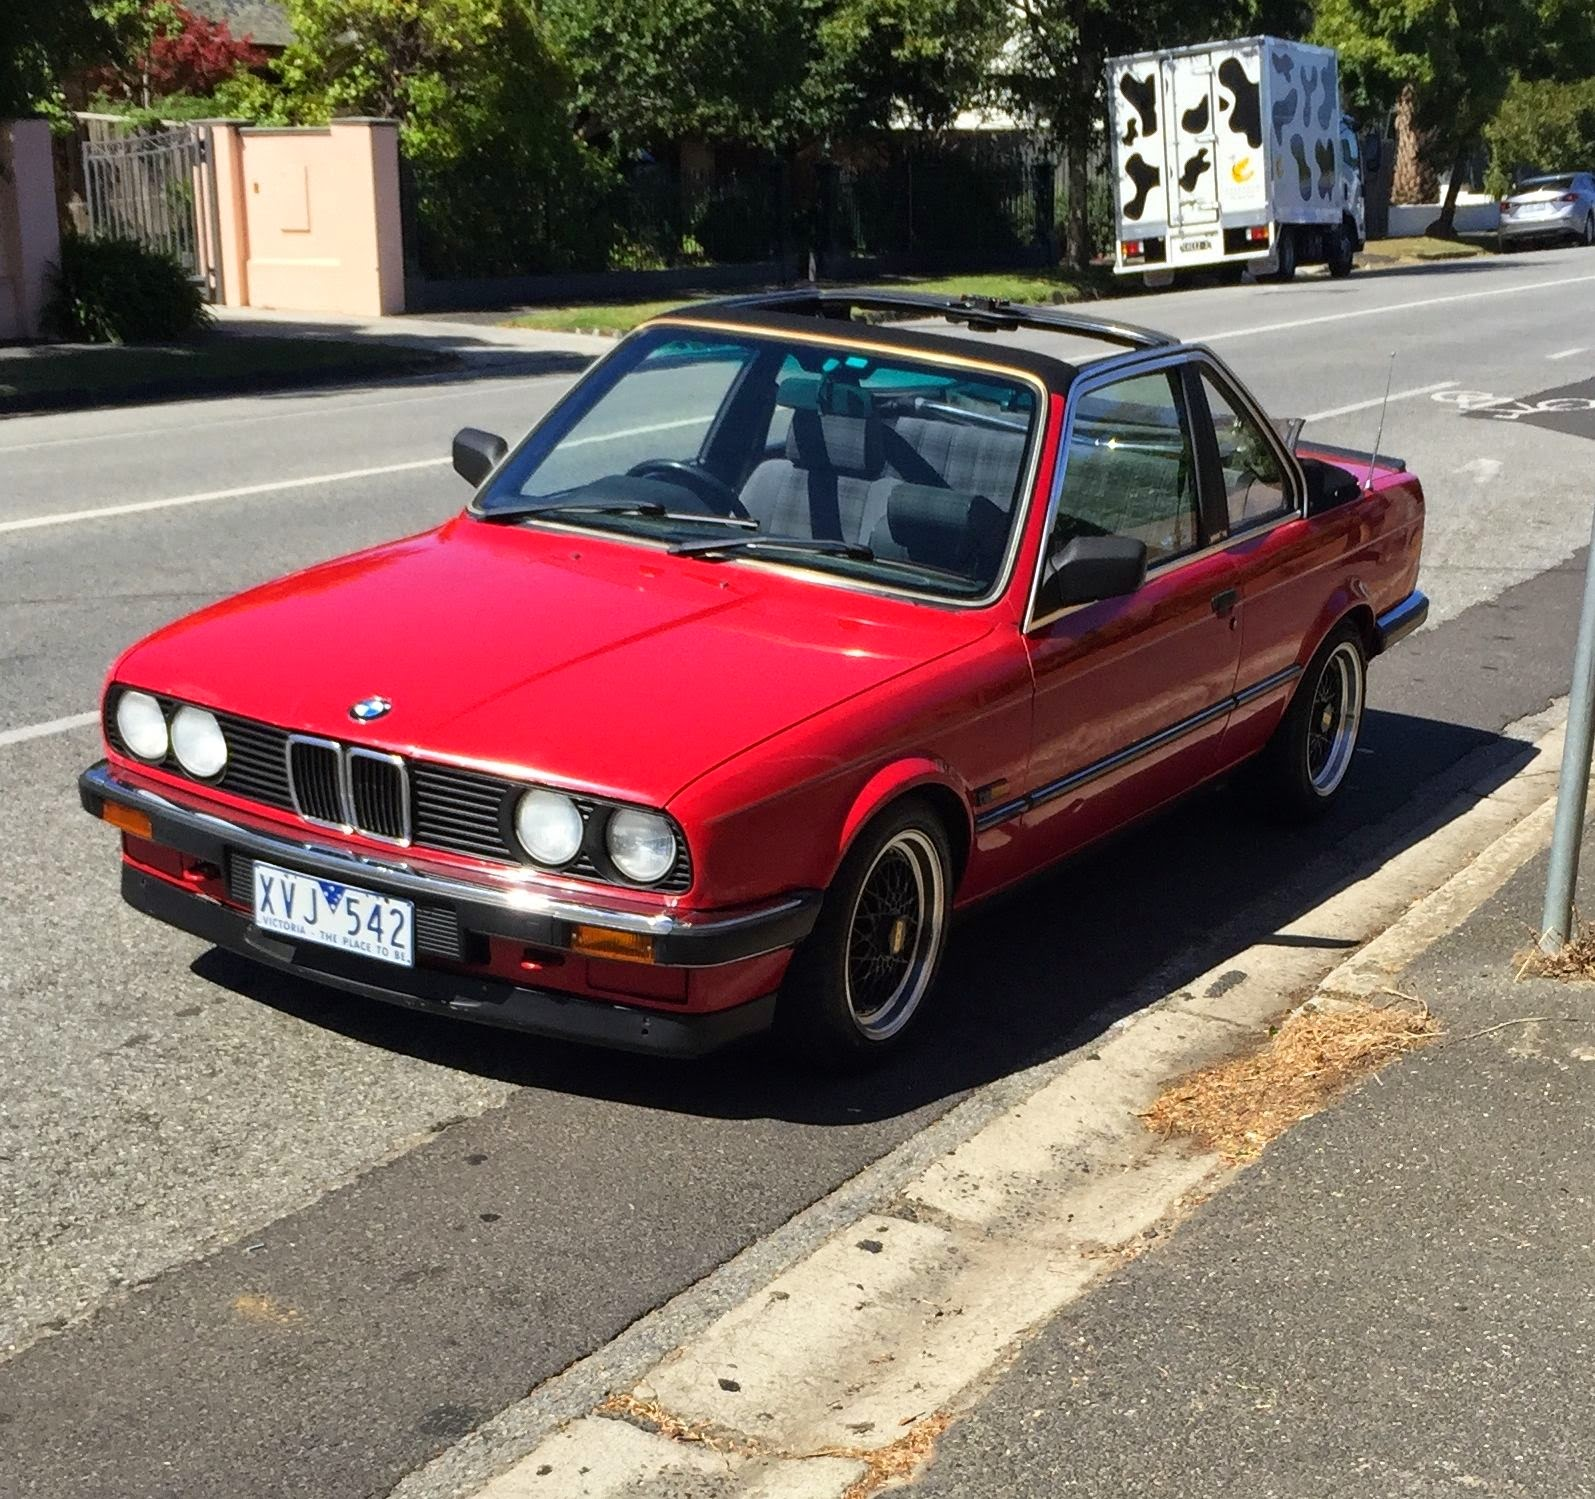 baurspotting 1985 bmw e30 318i tc baur manual for sale in australia. Black Bedroom Furniture Sets. Home Design Ideas